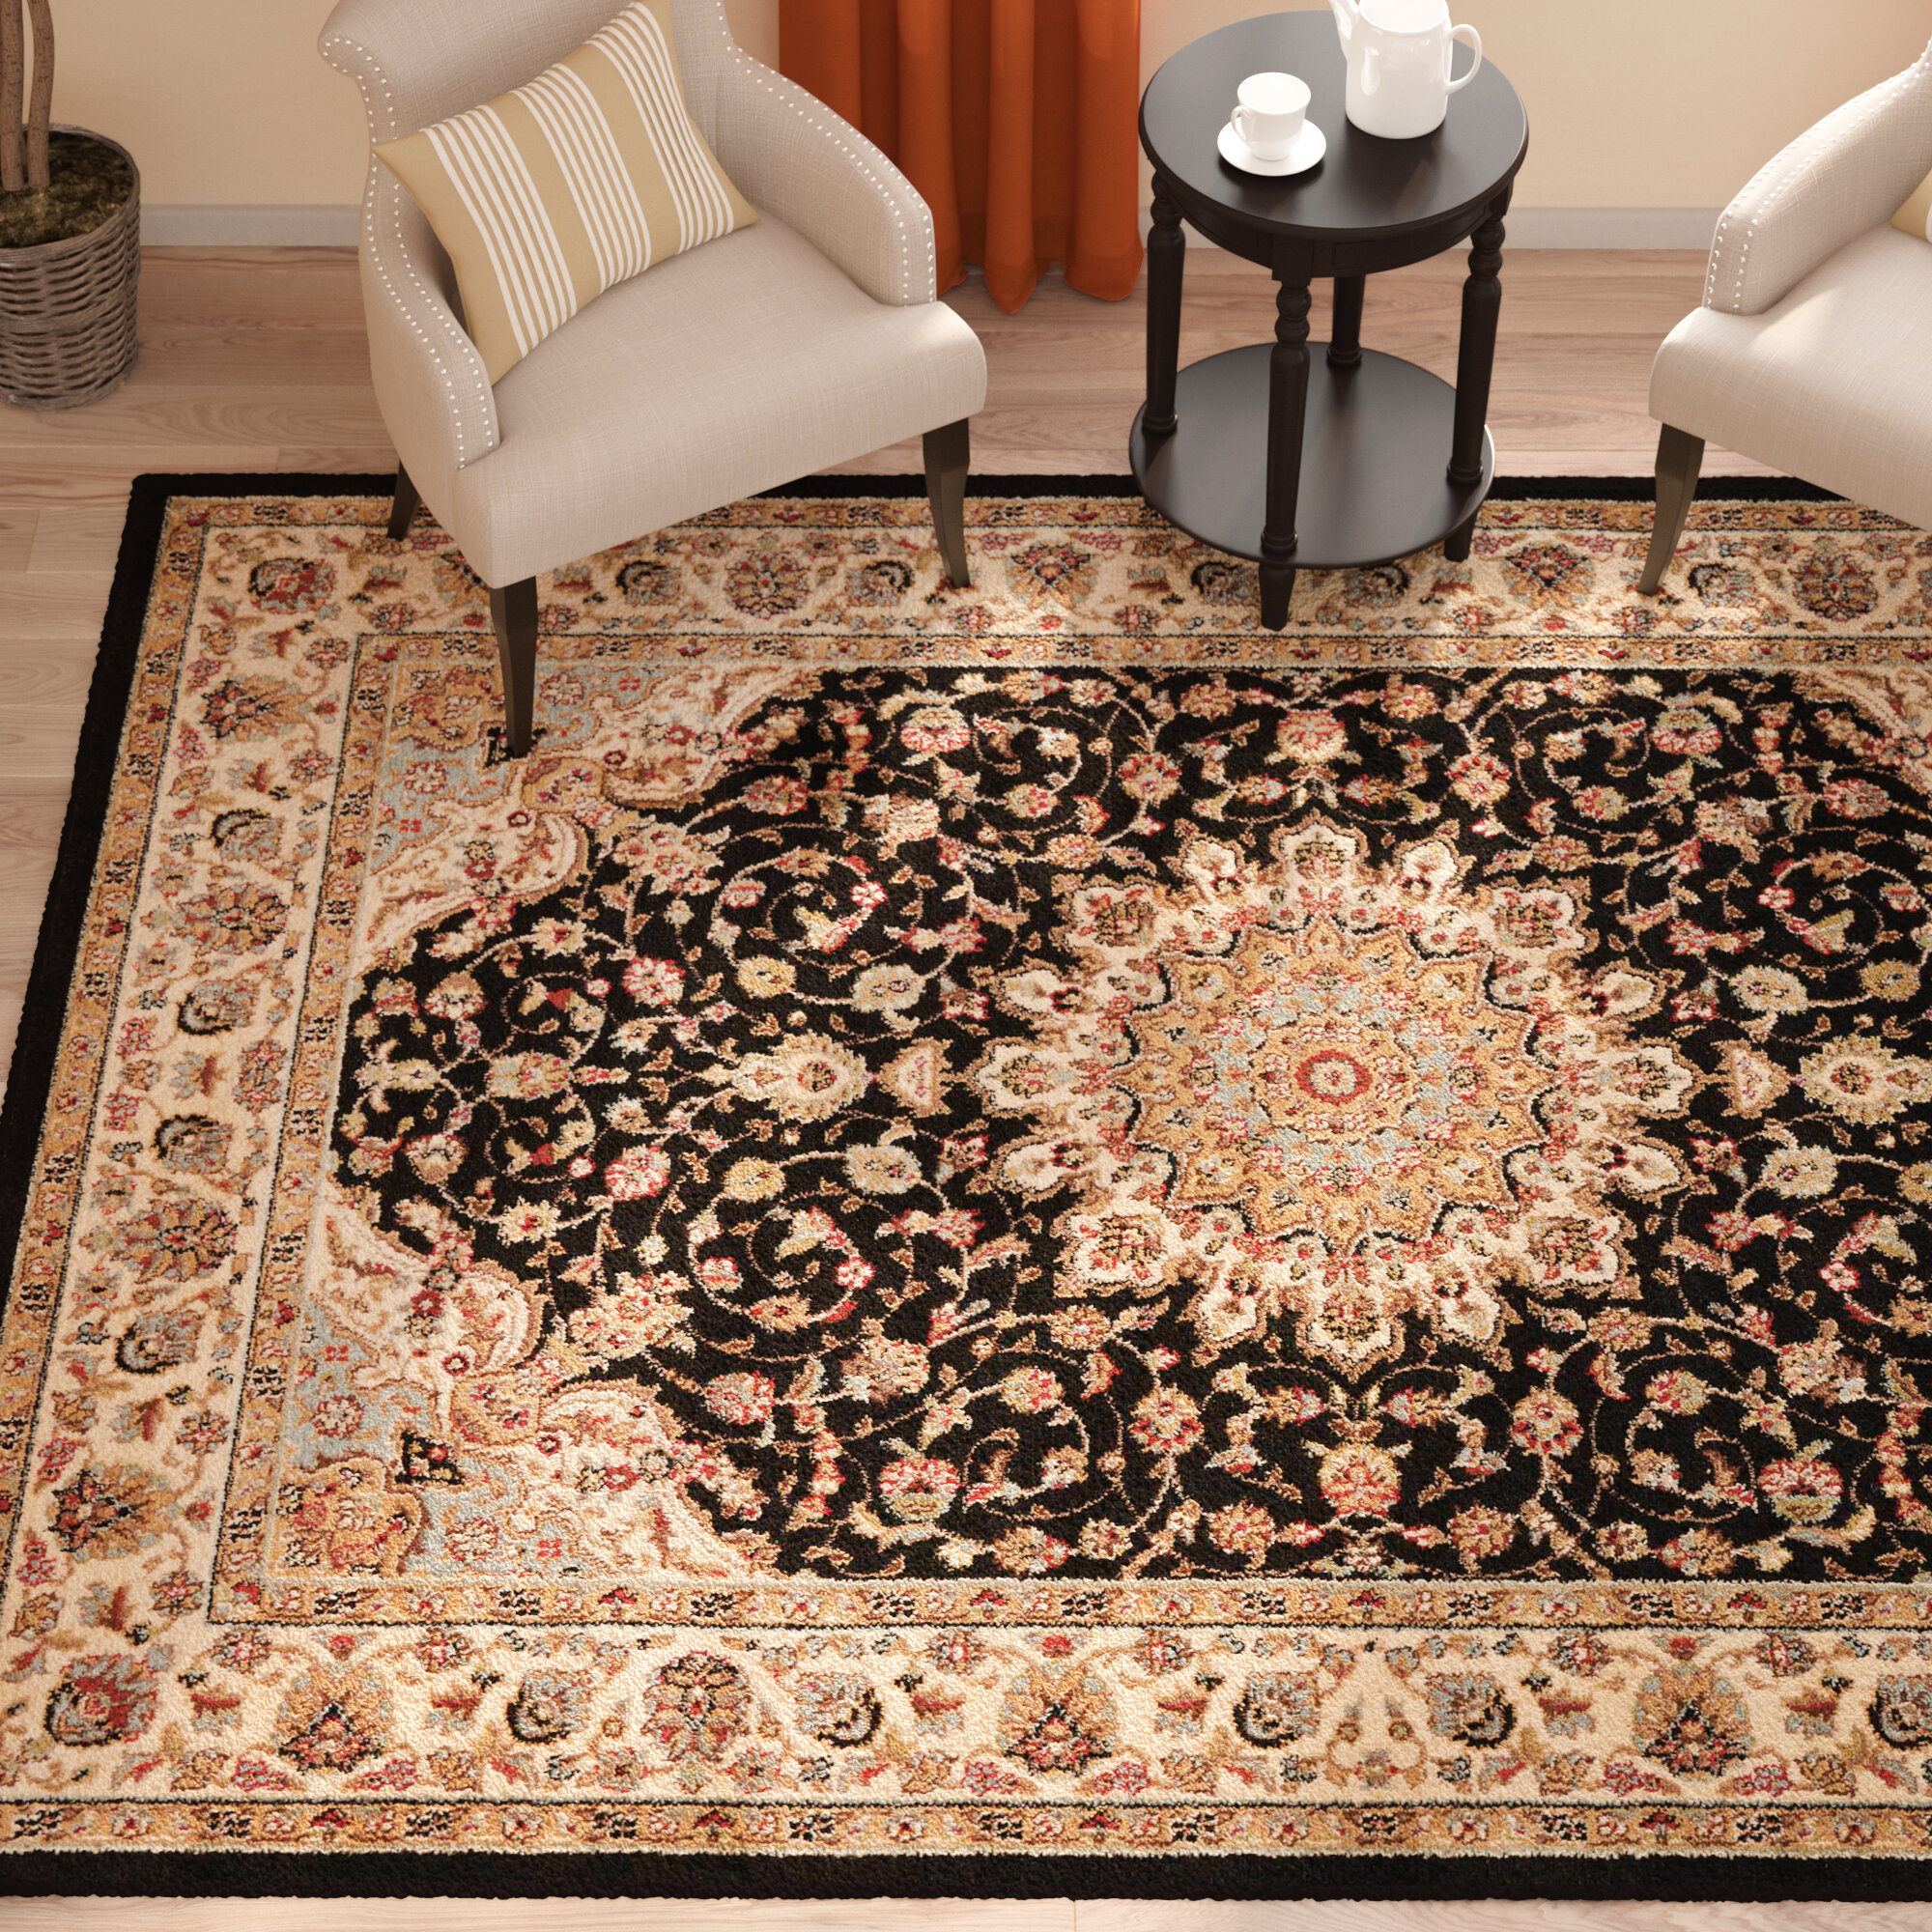 fpx rugs product macys macy milan s area black km main sanford image created for home rug shop